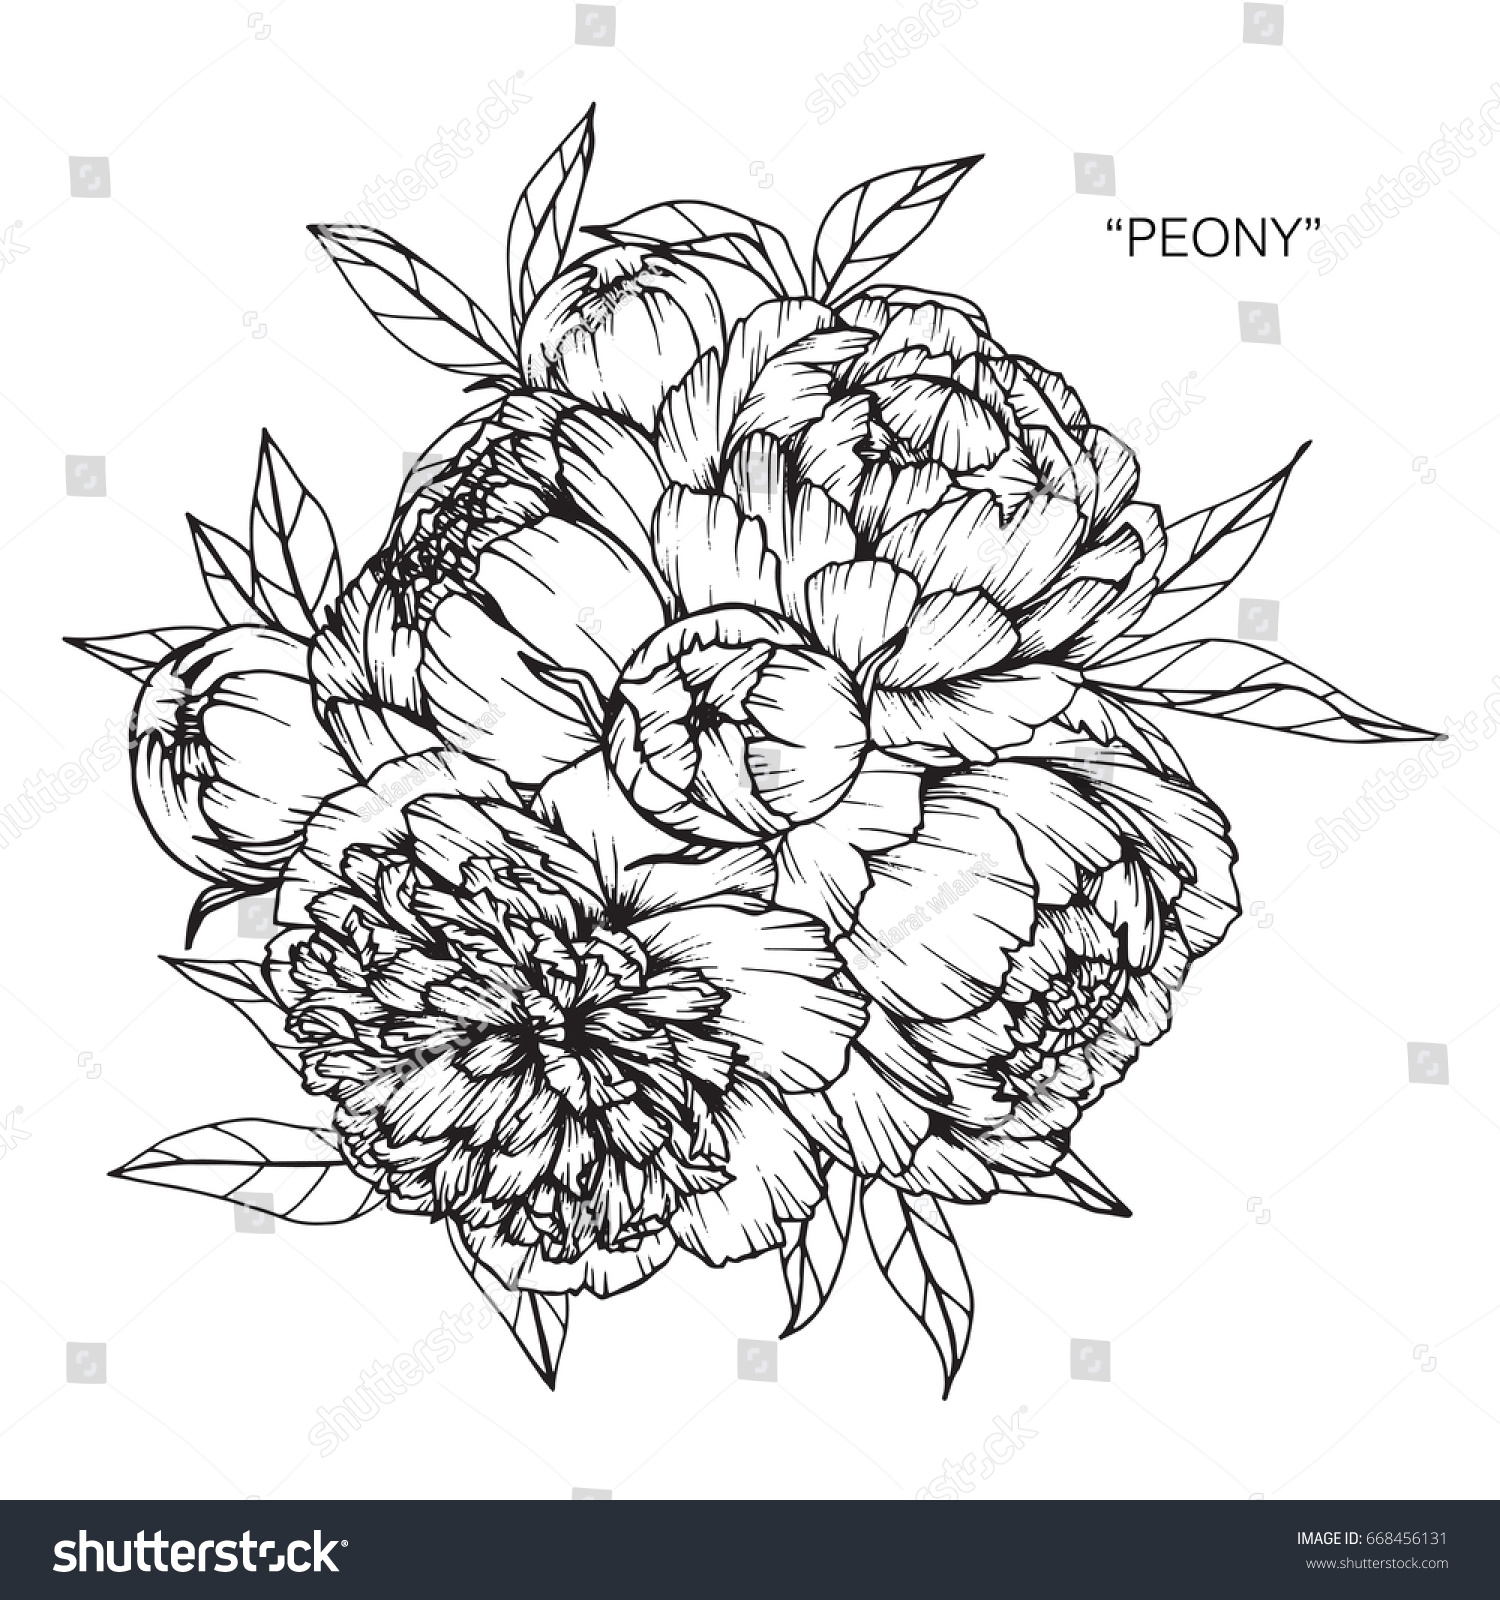 Bouquet peony flowers drawing sketch lineart stock vector royalty bouquet of peony flowers drawing and sketch with line art on white backgrounds izmirmasajfo